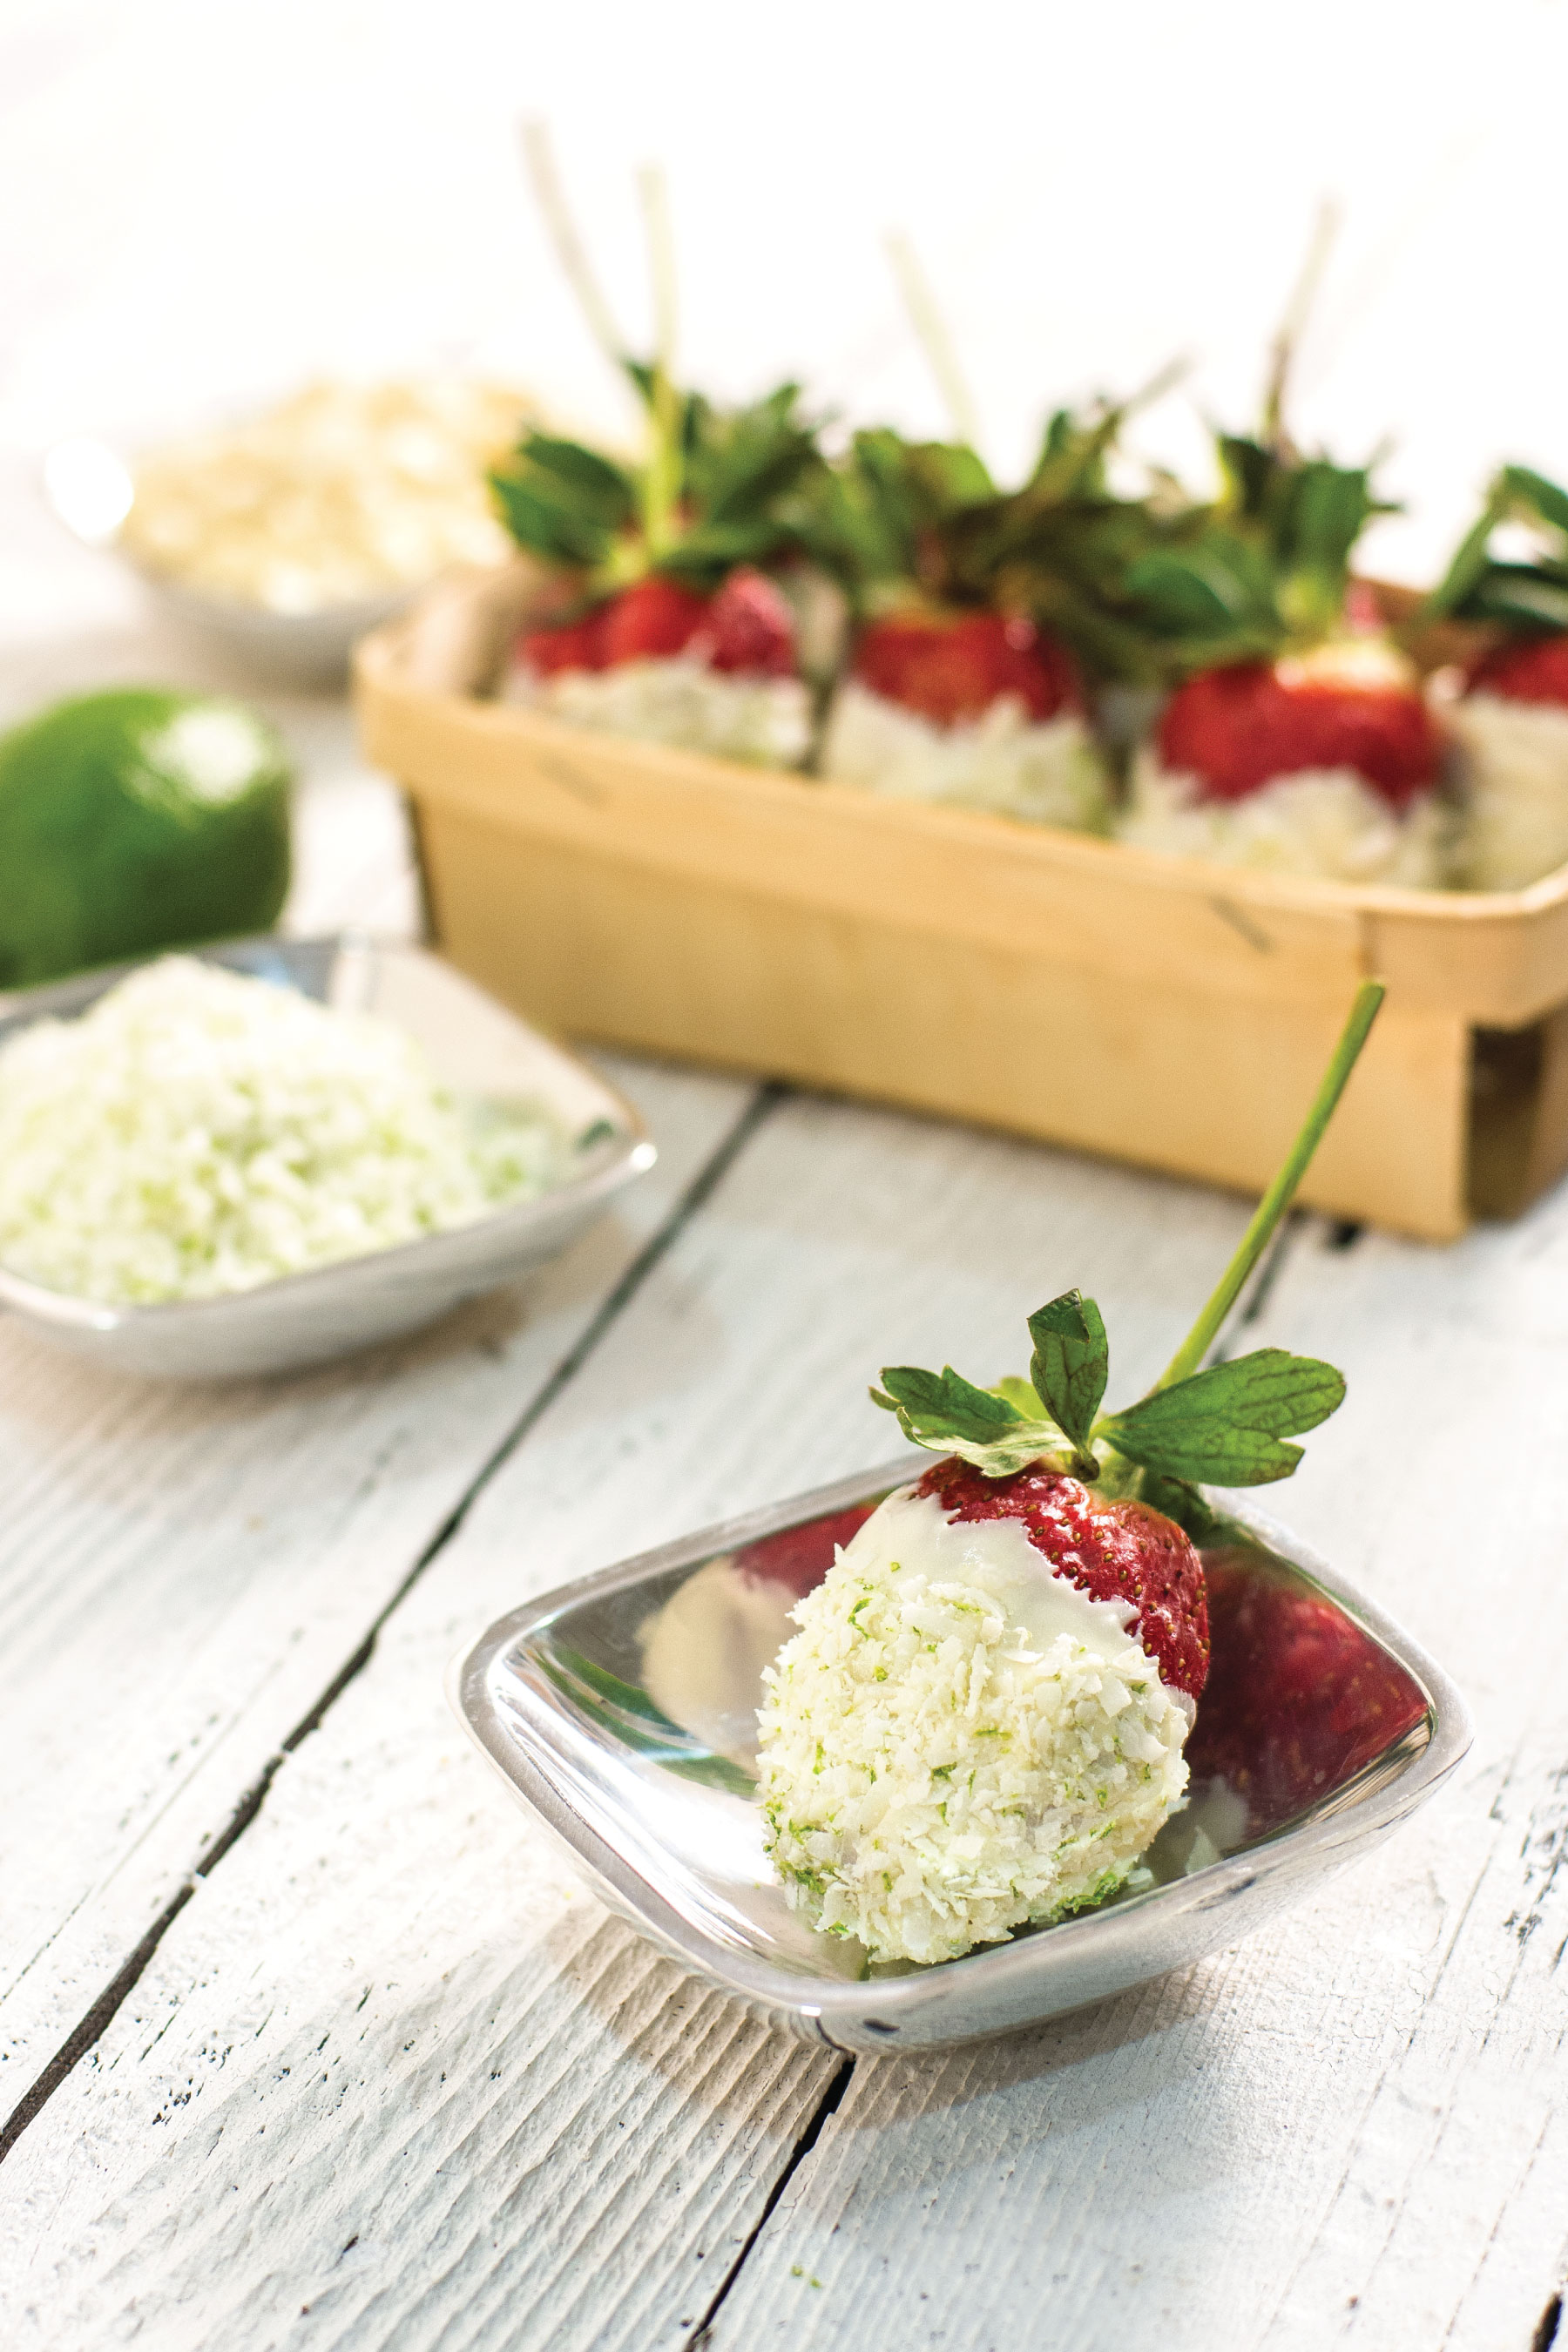 White Chocolate with Coconut and Lime Dipped Strawberries by Sam Henderson for California Giant Berry Farms